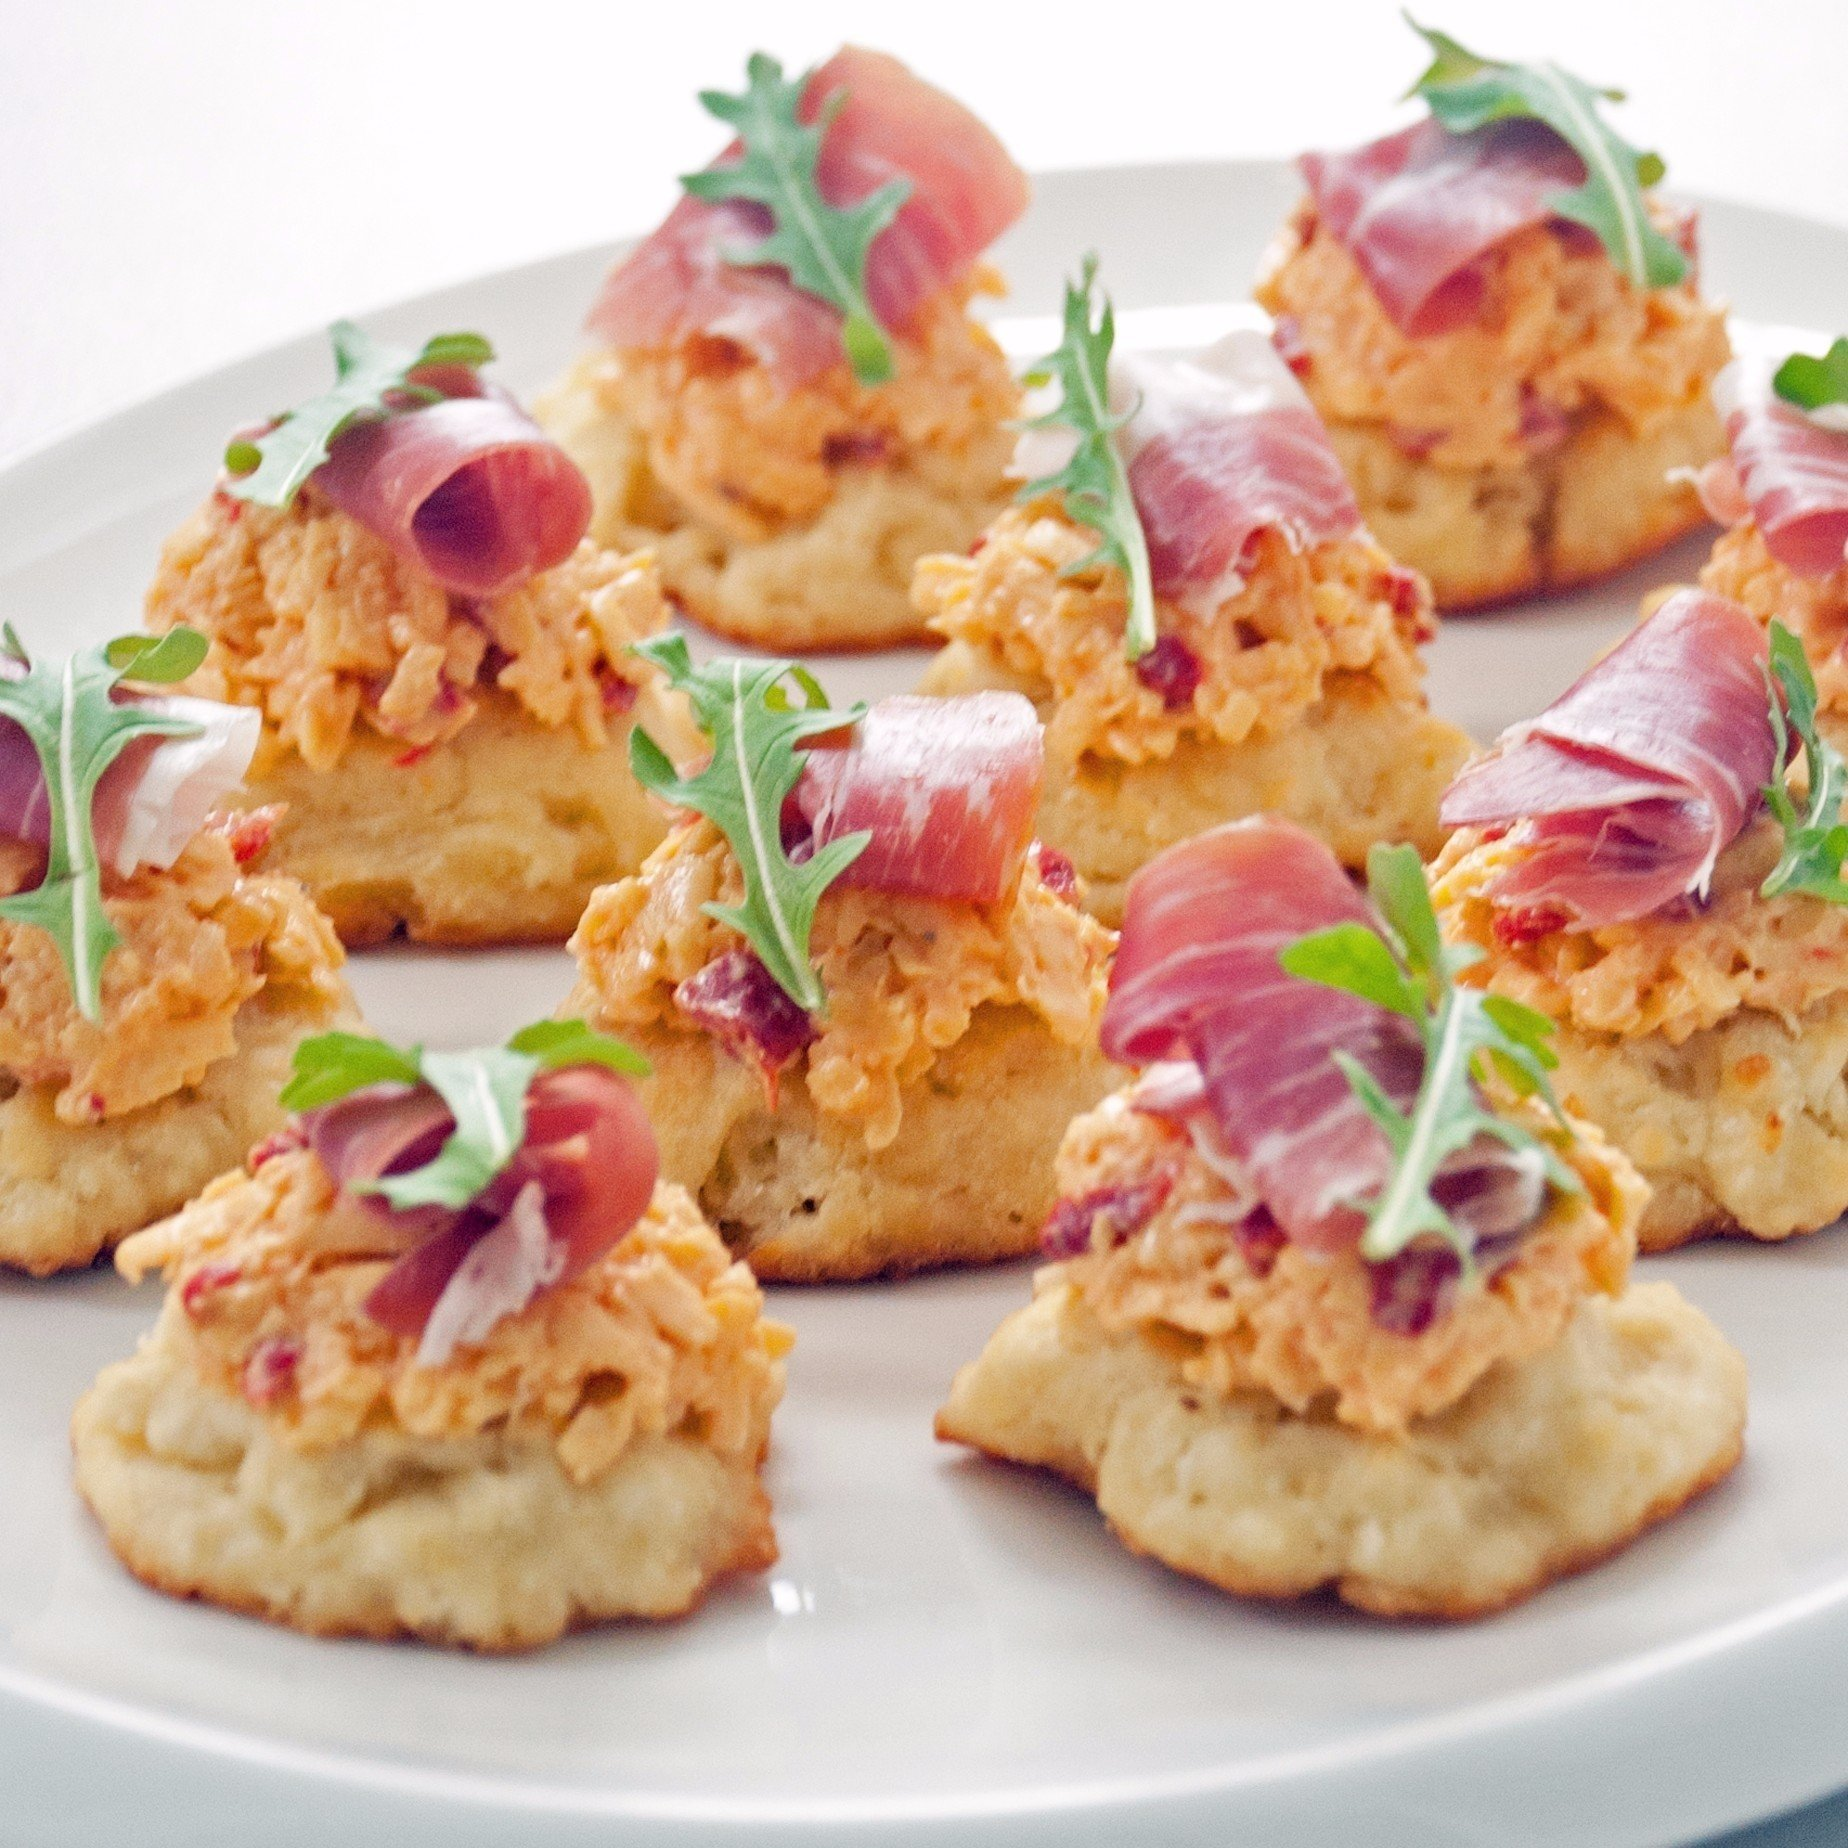 10 Nice Passed Hors D Oeuvres Ideas wedding appetizer ideas popsugar food 2021